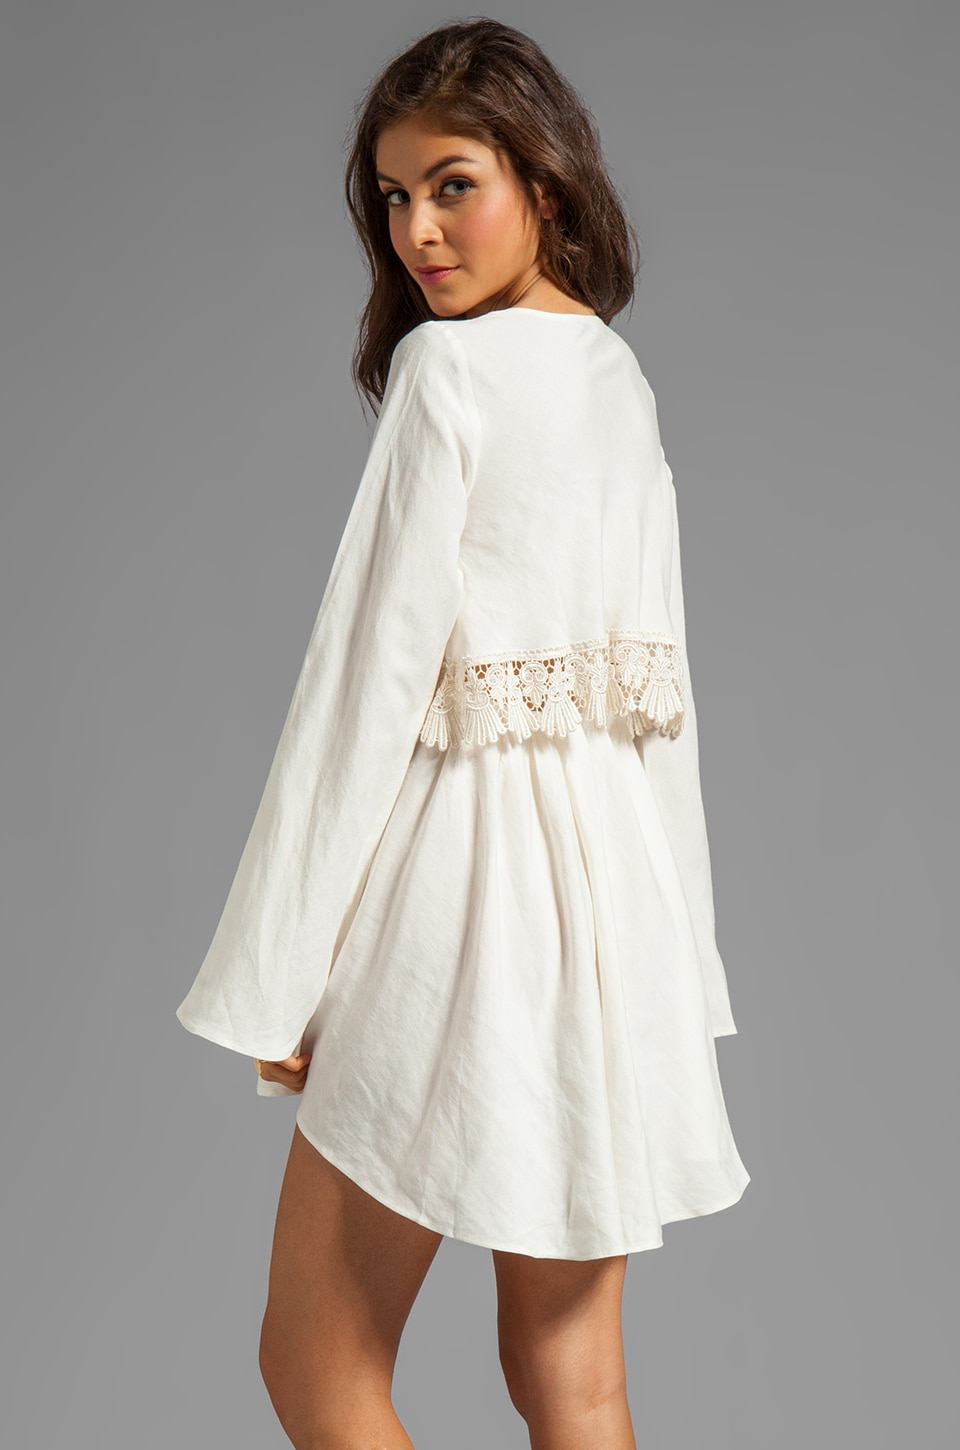 For Love & Lemons Luciana Long Sleeve Dress w/ Lace Detail in Ivory